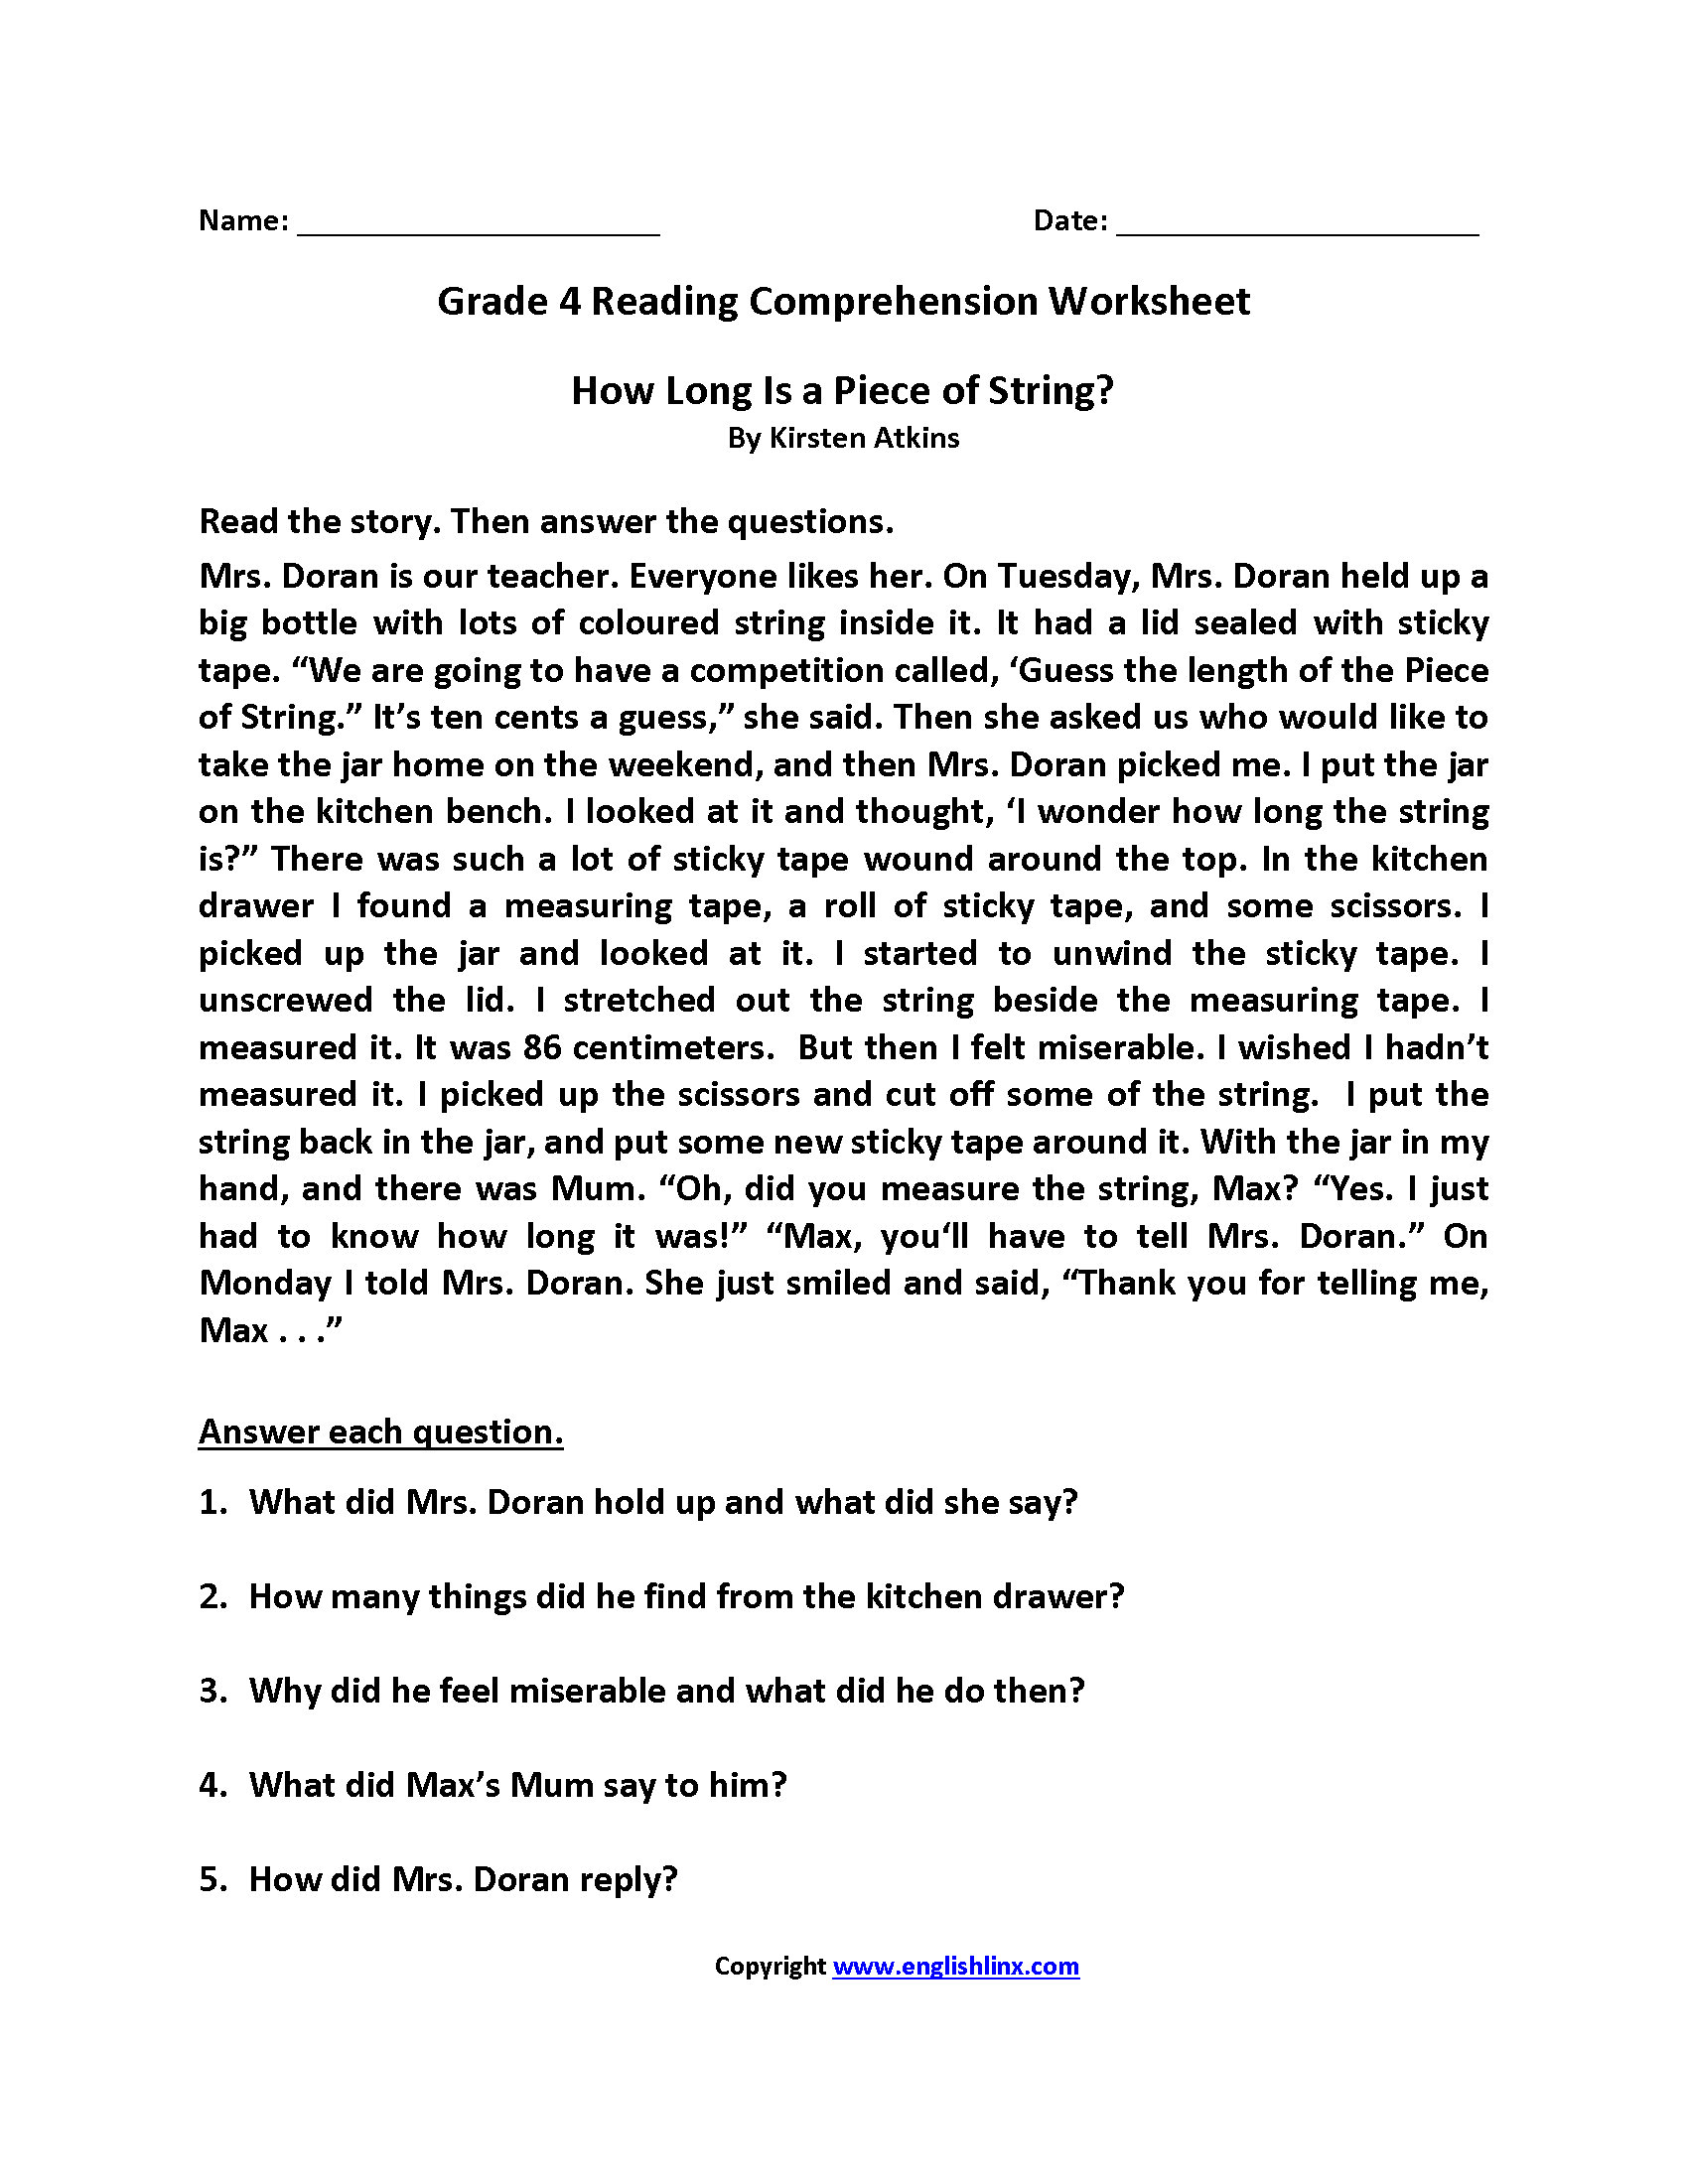 Worksheet 4th Grade Reading Comprehension Worksheet Grass Fedjp Worksheet Study Site